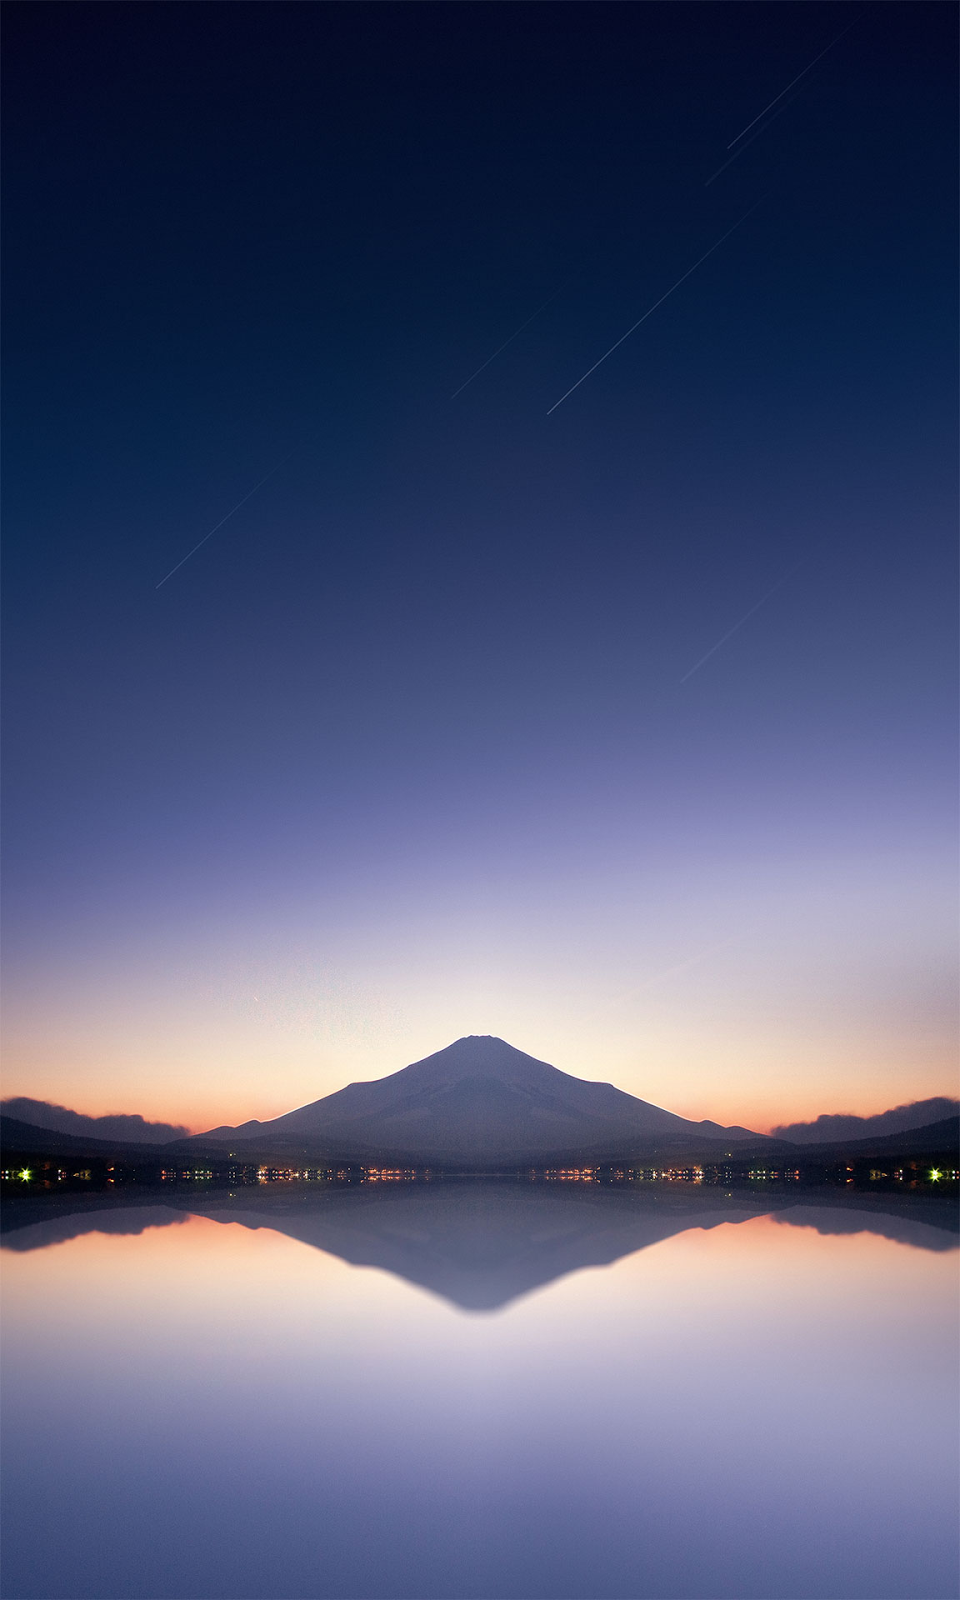 Meizu mx4 stock wallpapers xiaomi smartphones wallpapers for Wallpaper stockists